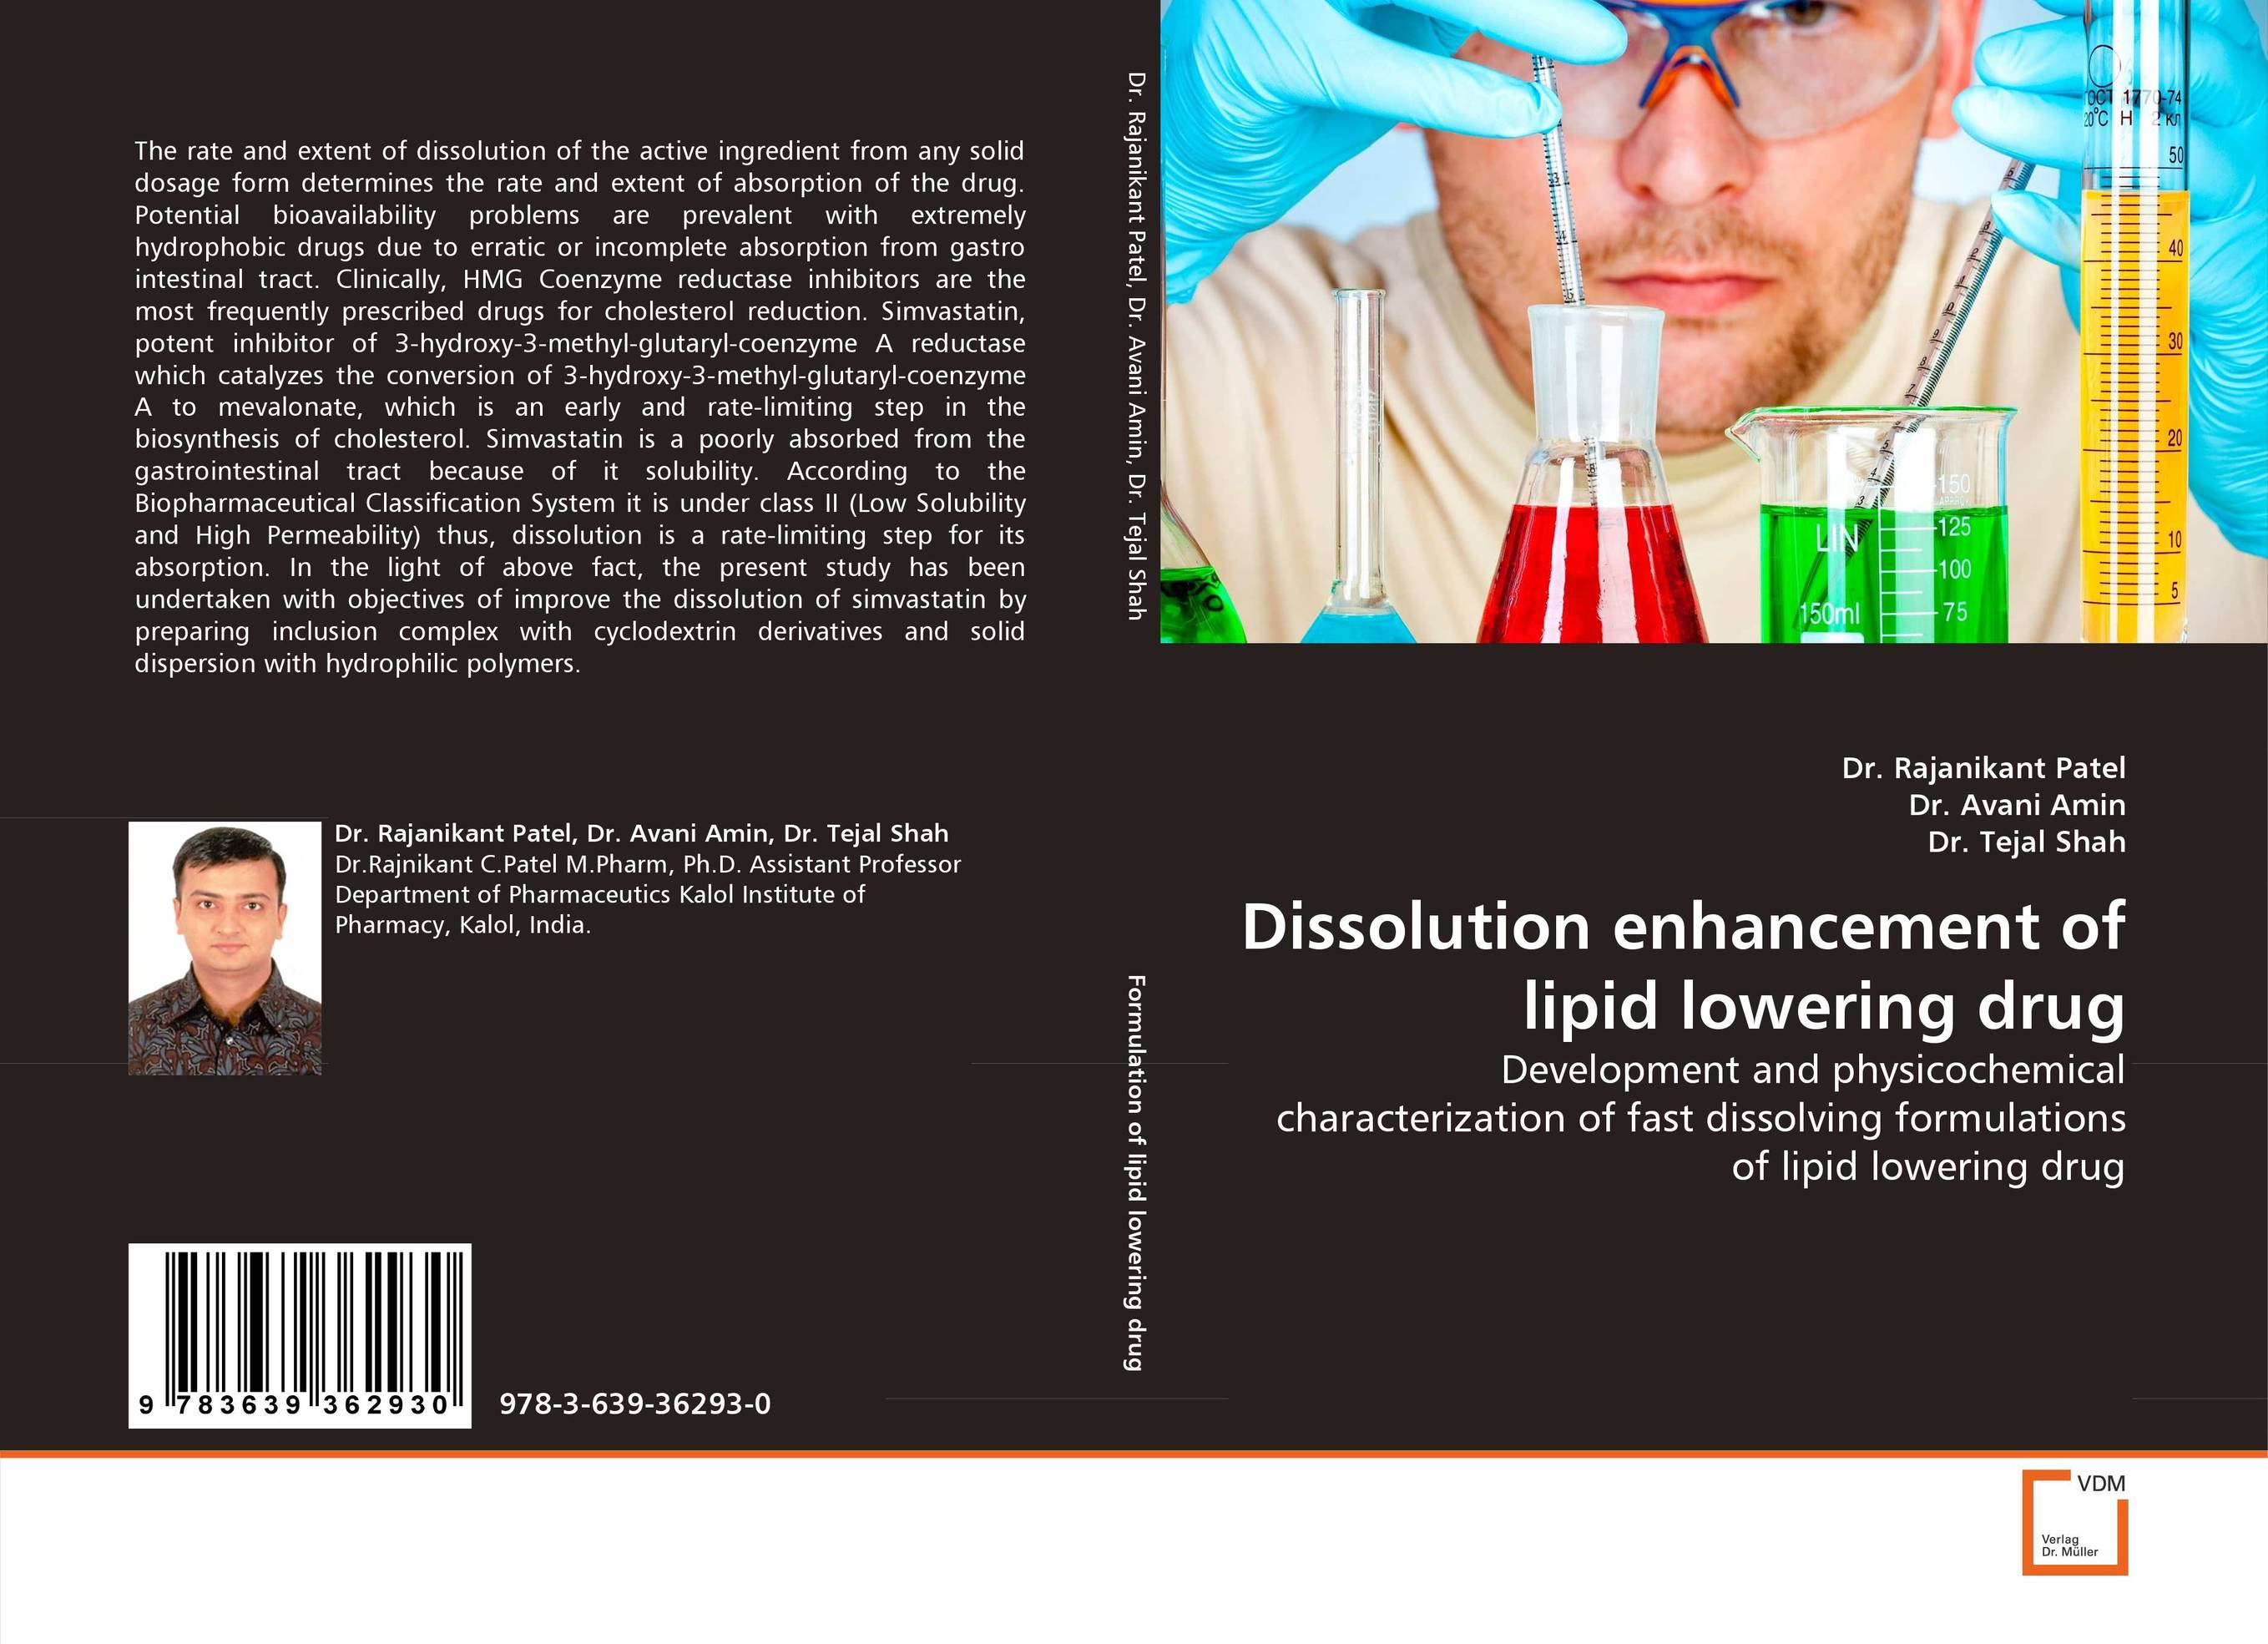 Dissolution enhancement of lipid lowering drug alex avdeef absorption and drug development solubility permeability and charge state